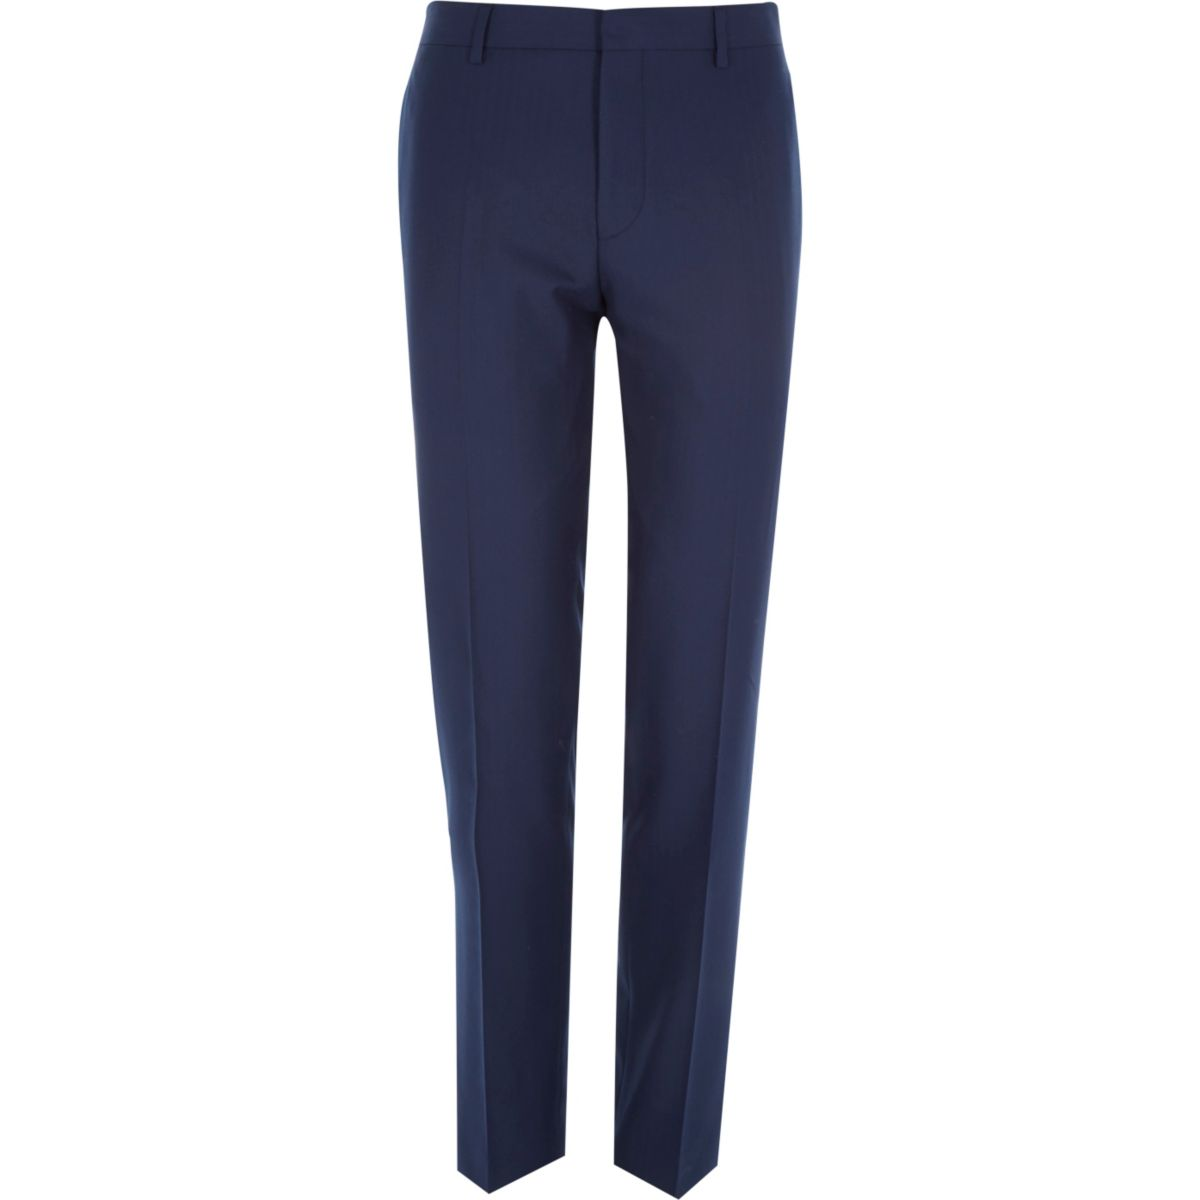 Navy herringbone tailored suit trousers